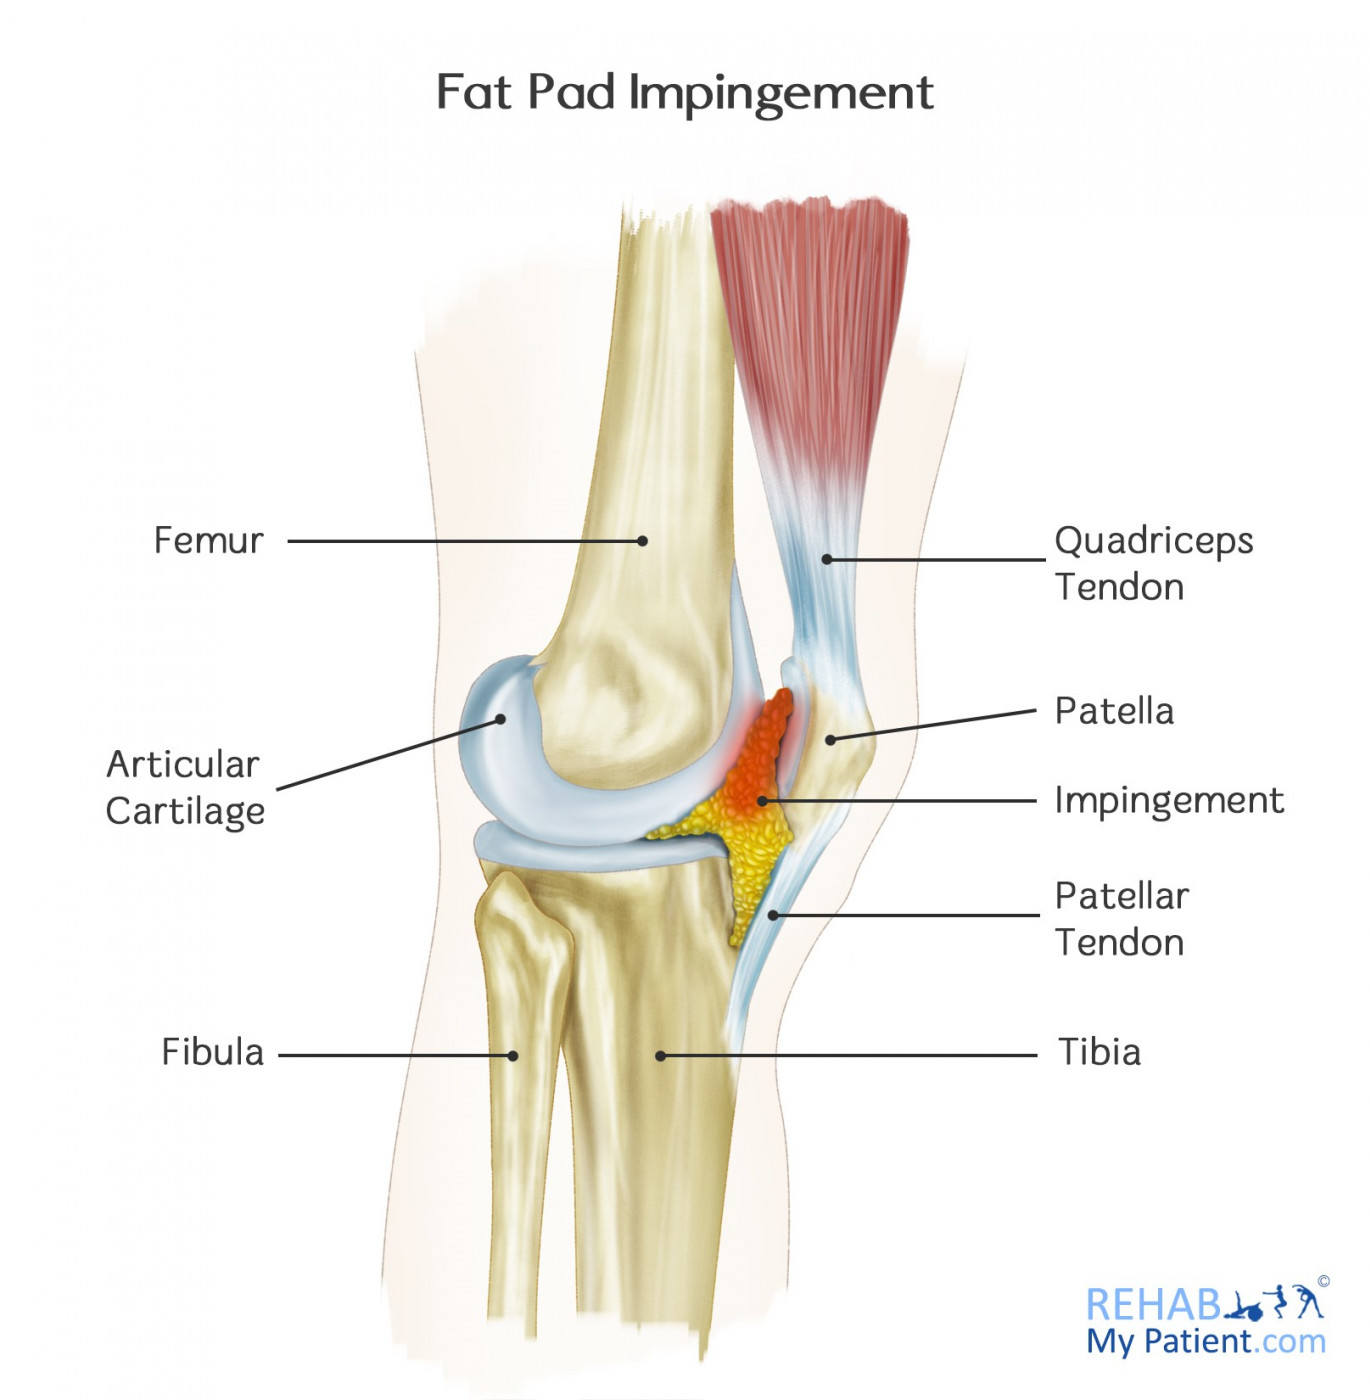 Fat Pad Impingement